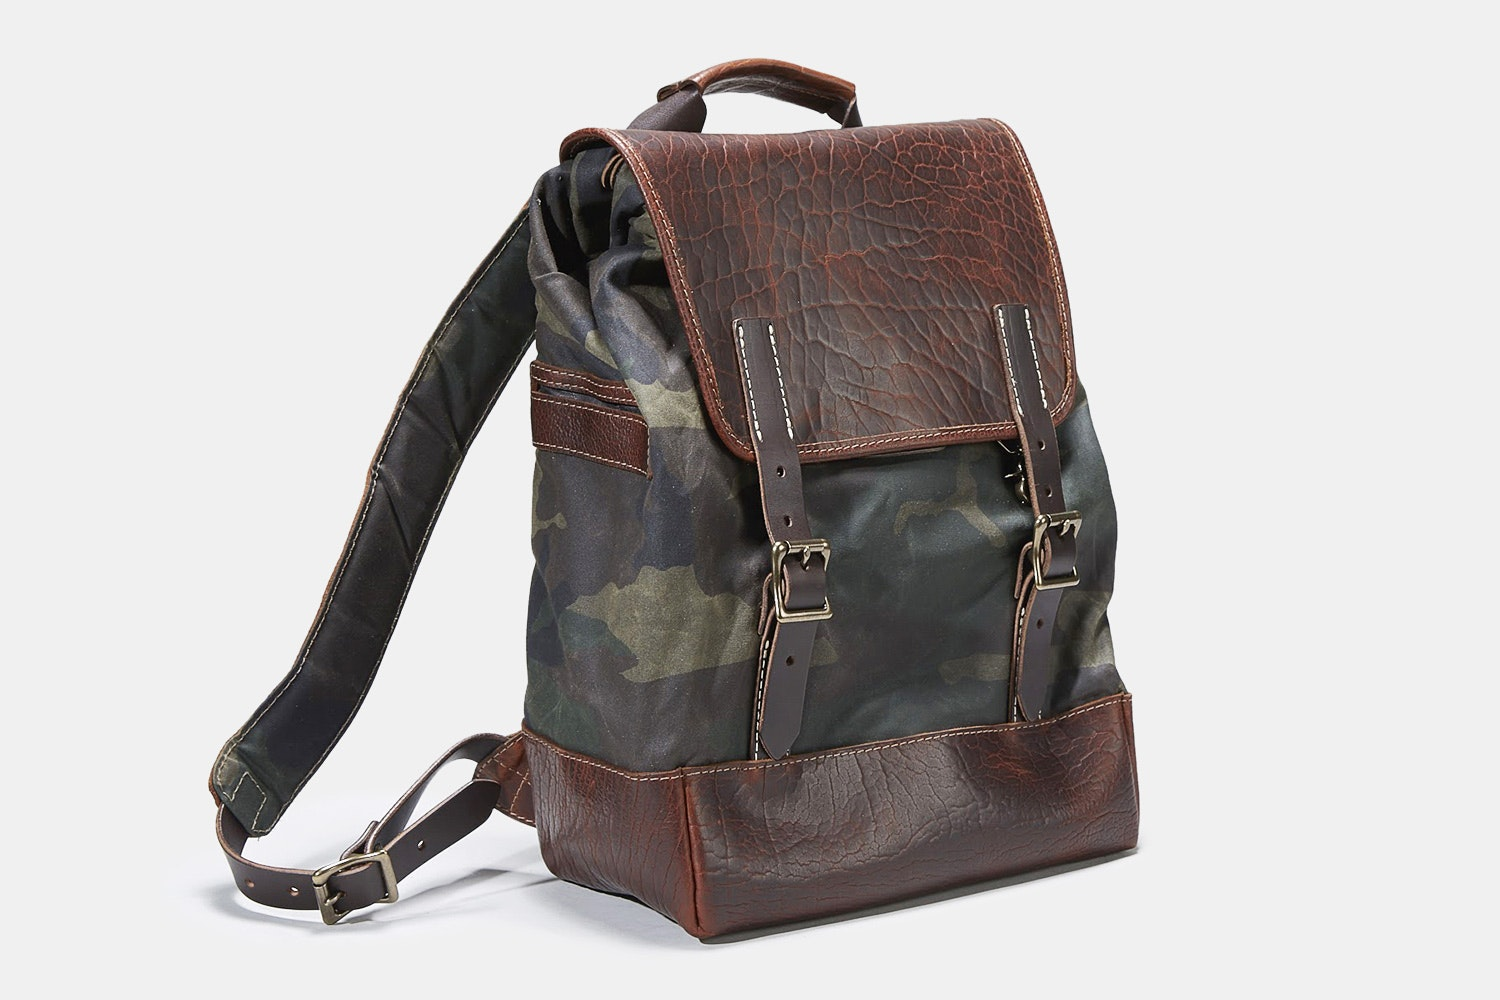 Coronado Leather Bison Redwood #530 Backpack